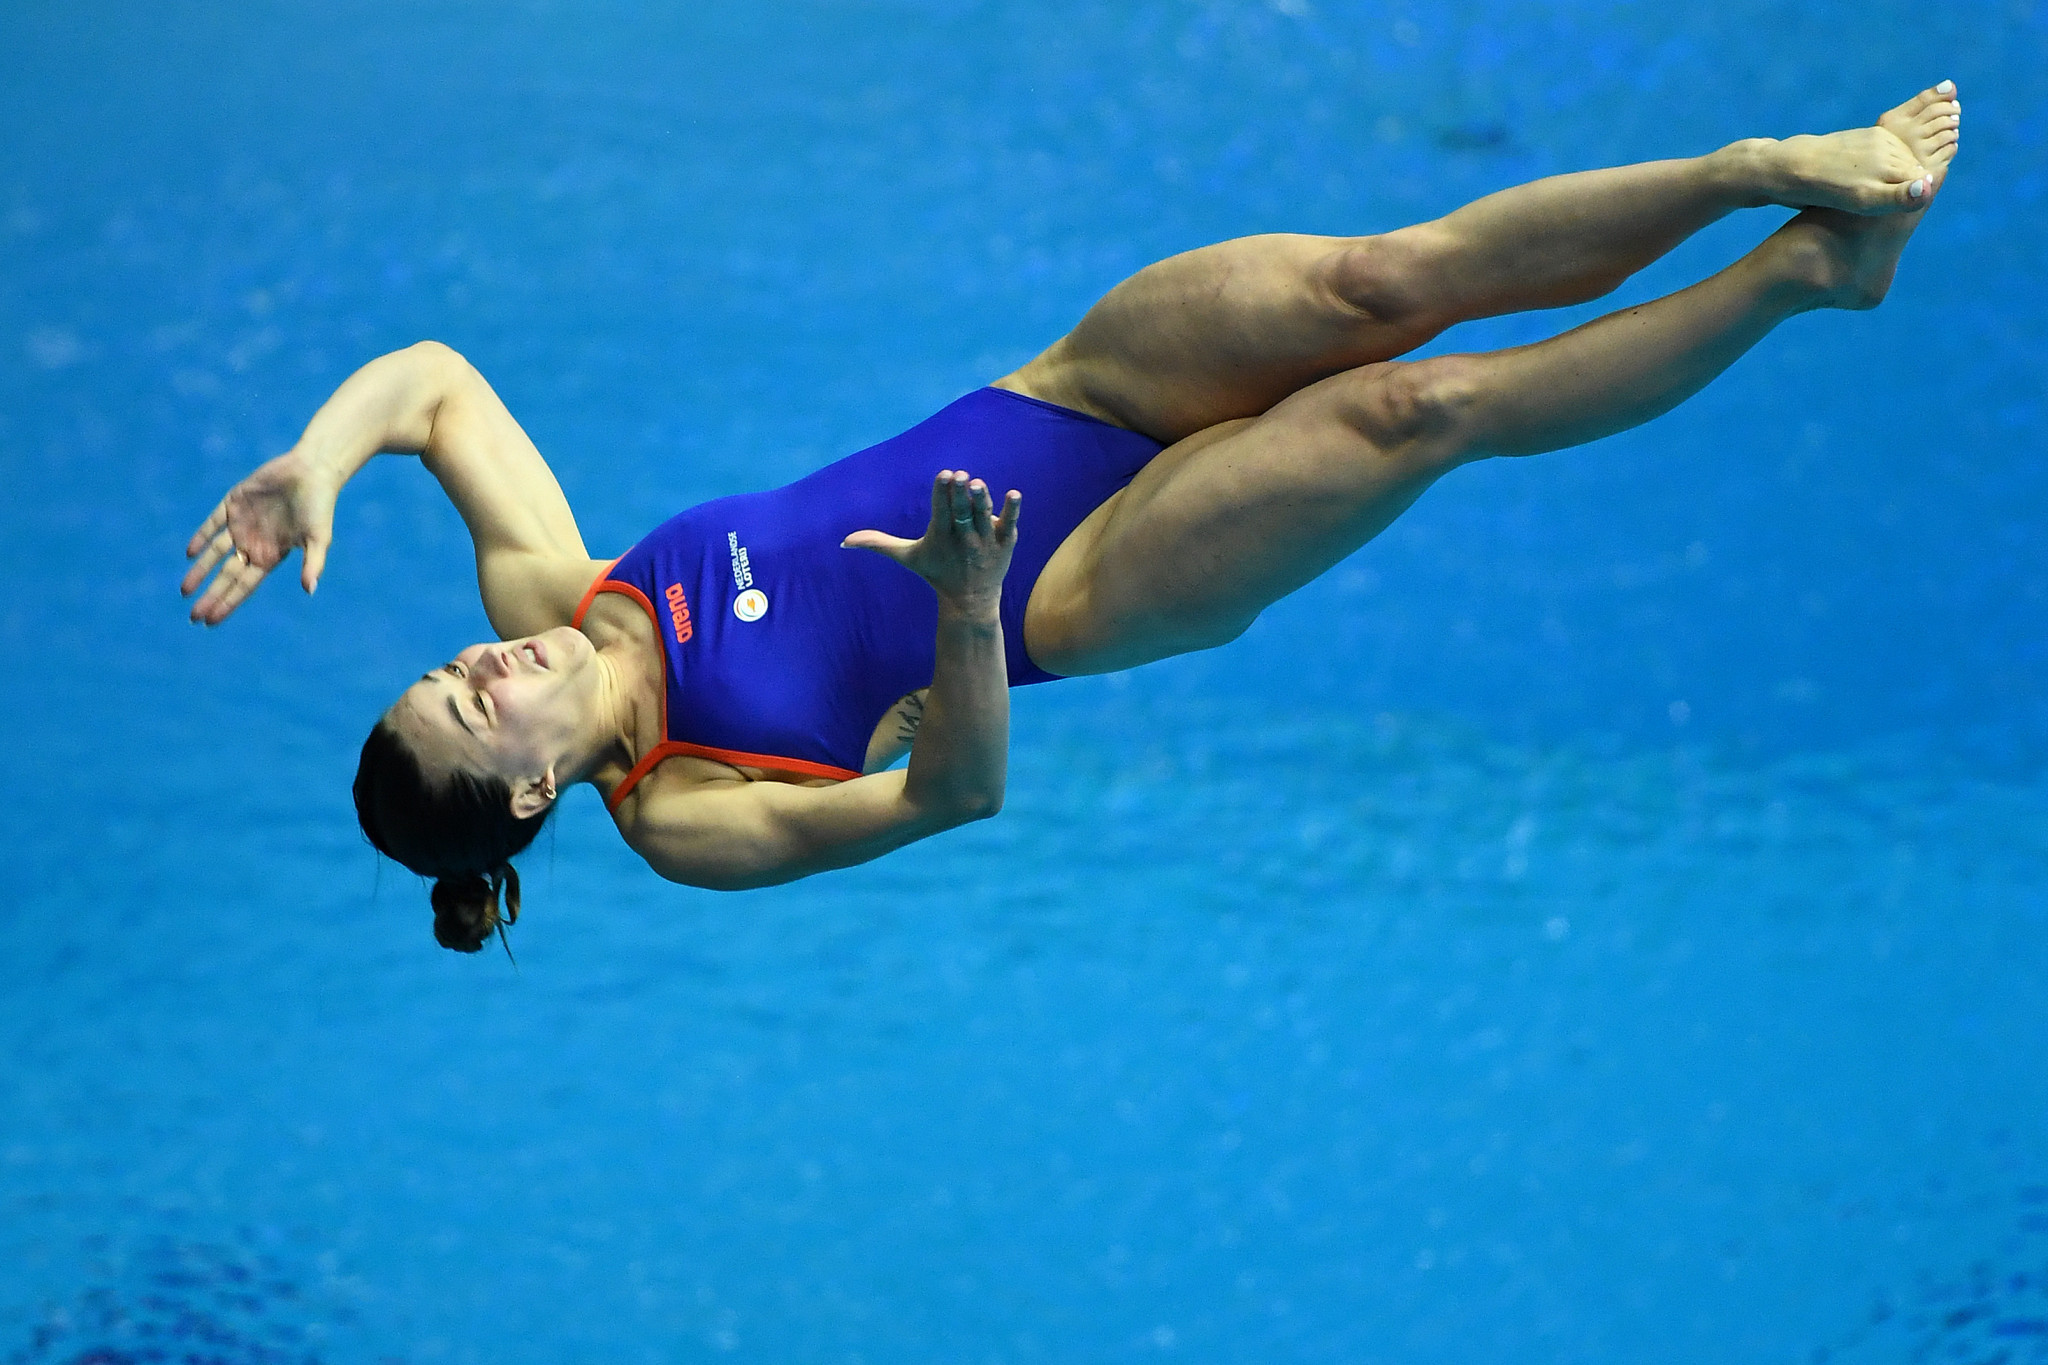 The Netherlands have received a quota place for the women's 3 metre springboard event at Tokyo 2020 after Inge Jansen claimed victory at the European Diving Championships in Kiev ©Getty Images